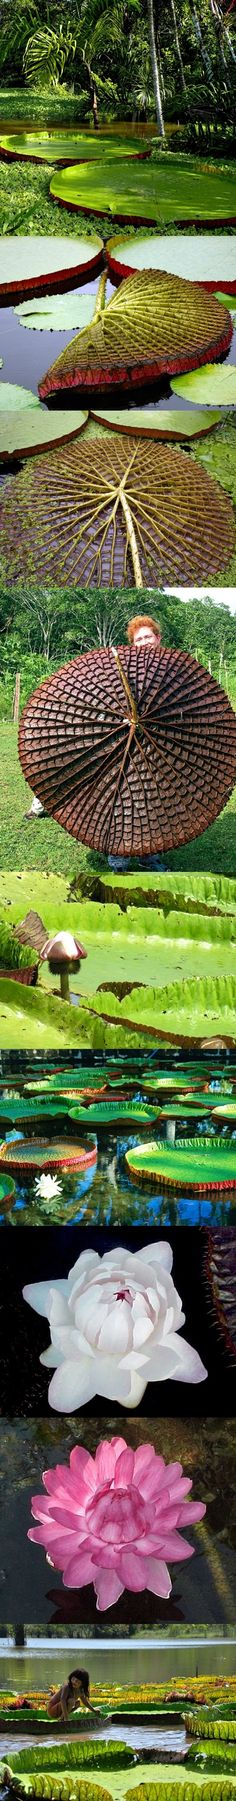 Amazon, Brazil - Giant lily pads